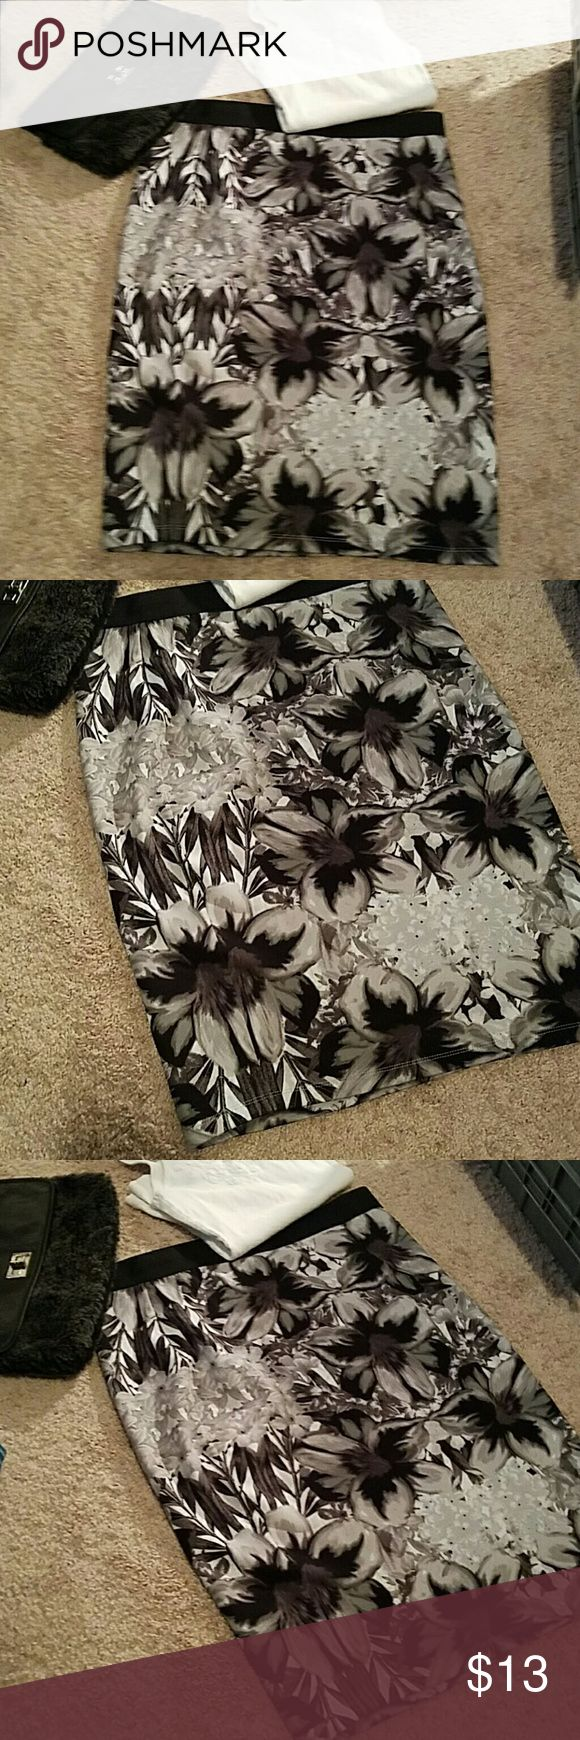 APT. 9 Body Con skirt size XL Black, gray and white flower print, body con skirt by APT. 9 size XL.  Elastic band around waistline.  94% polyester and 6% spandex.  In great preloved condition with very little wear.  Has a lot of stretch could fit up to a 1X in my opinion.  Very comfortable. APT 9 Skirts